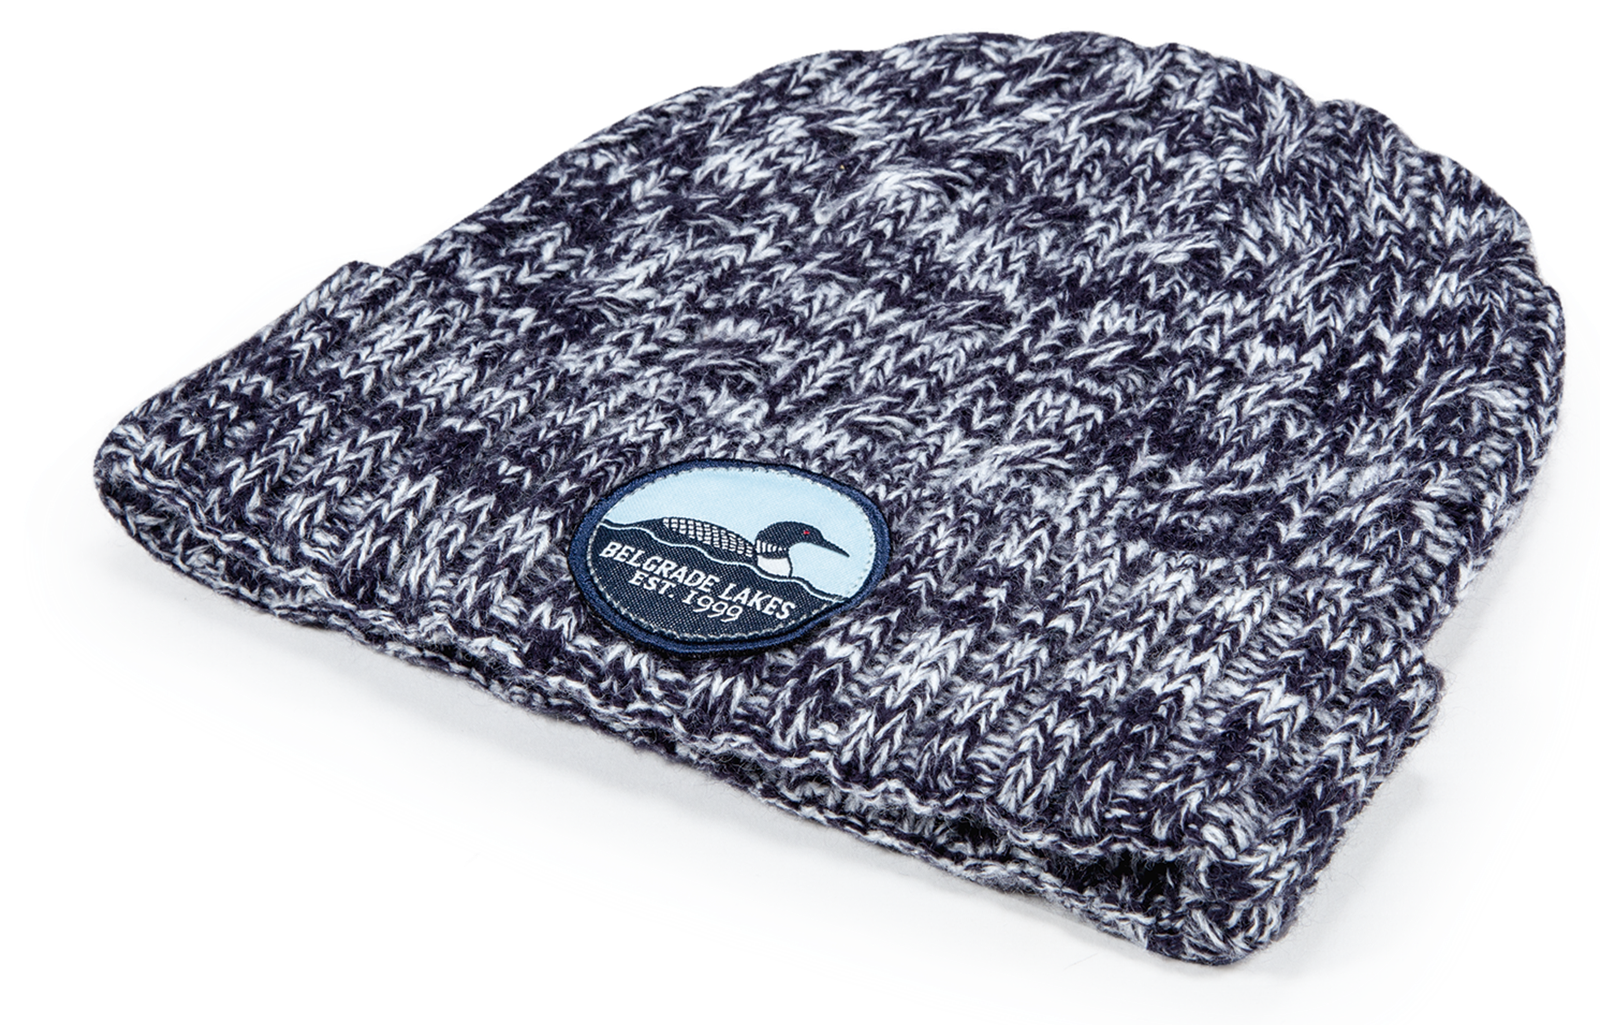 Pukka cuffed cable knit hat